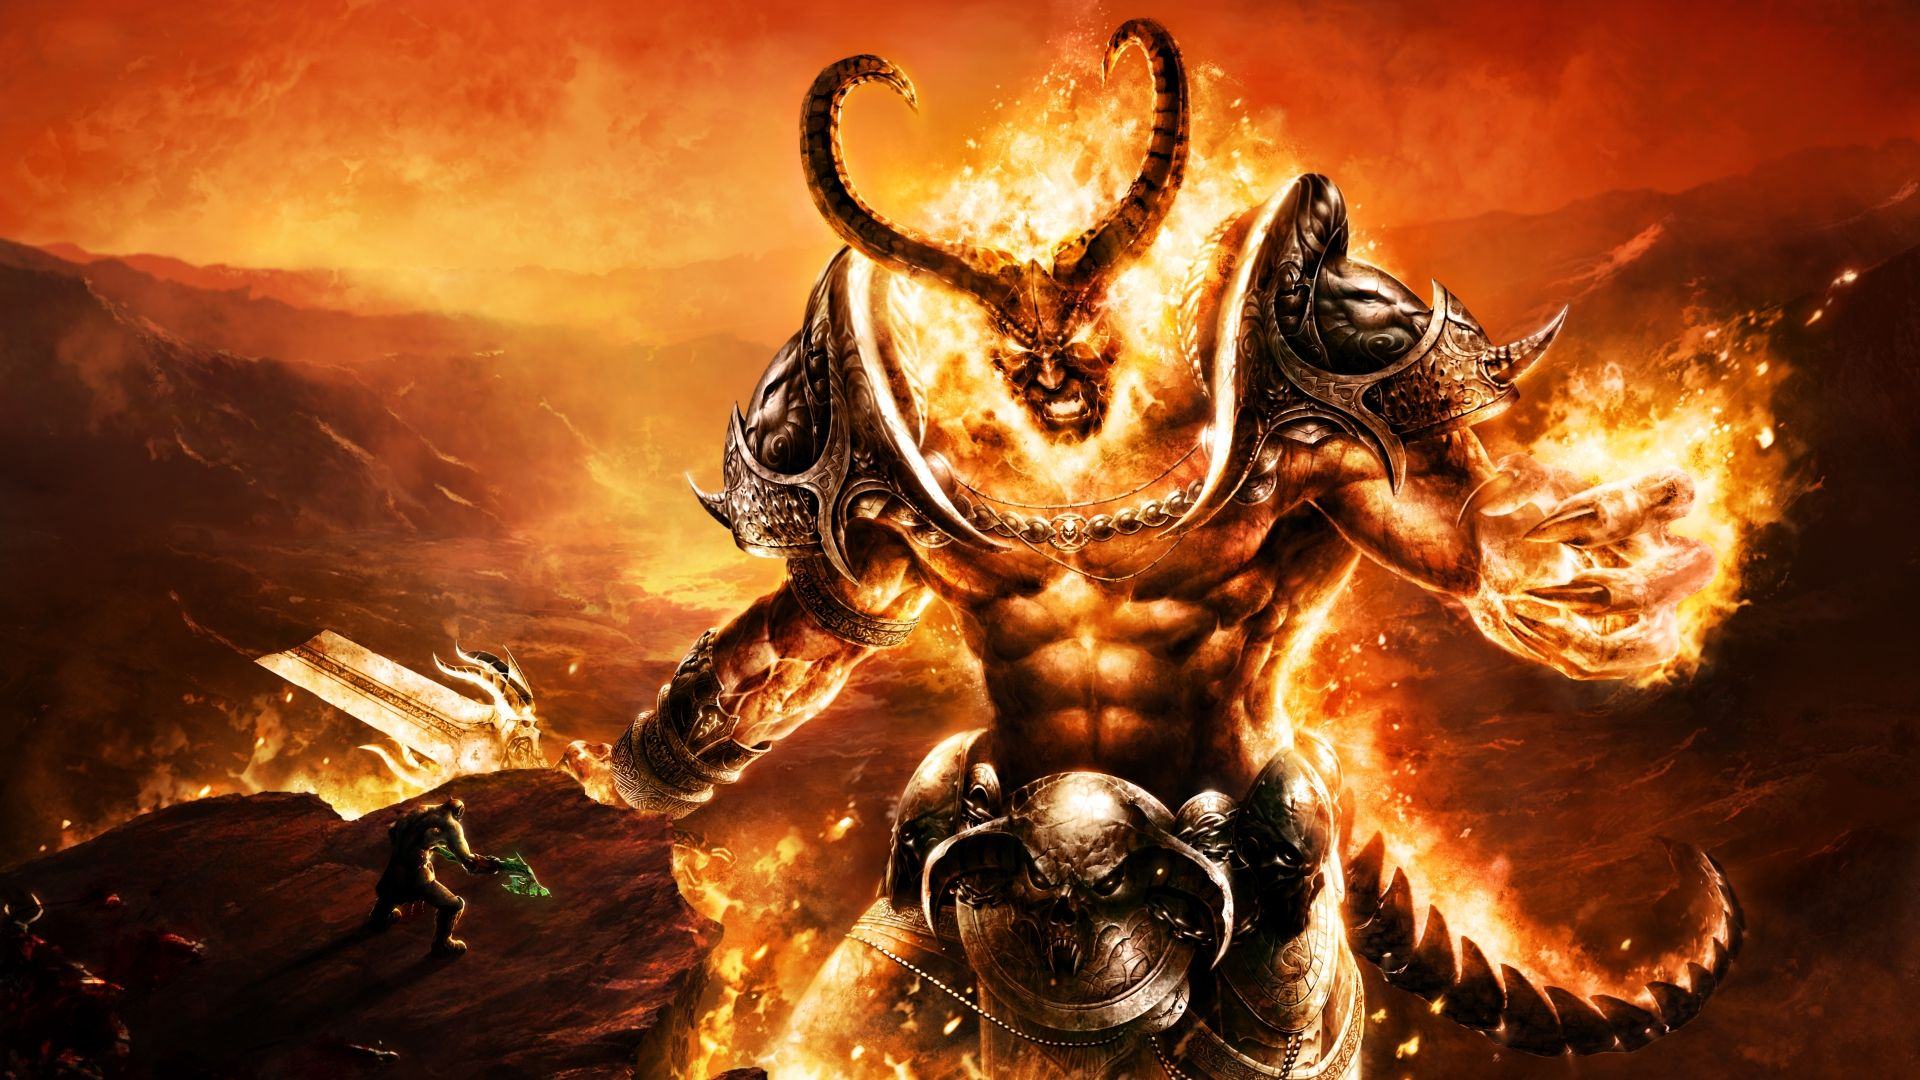 Demon Wallpaper HD World of warcraft wallpaper, Warcraft